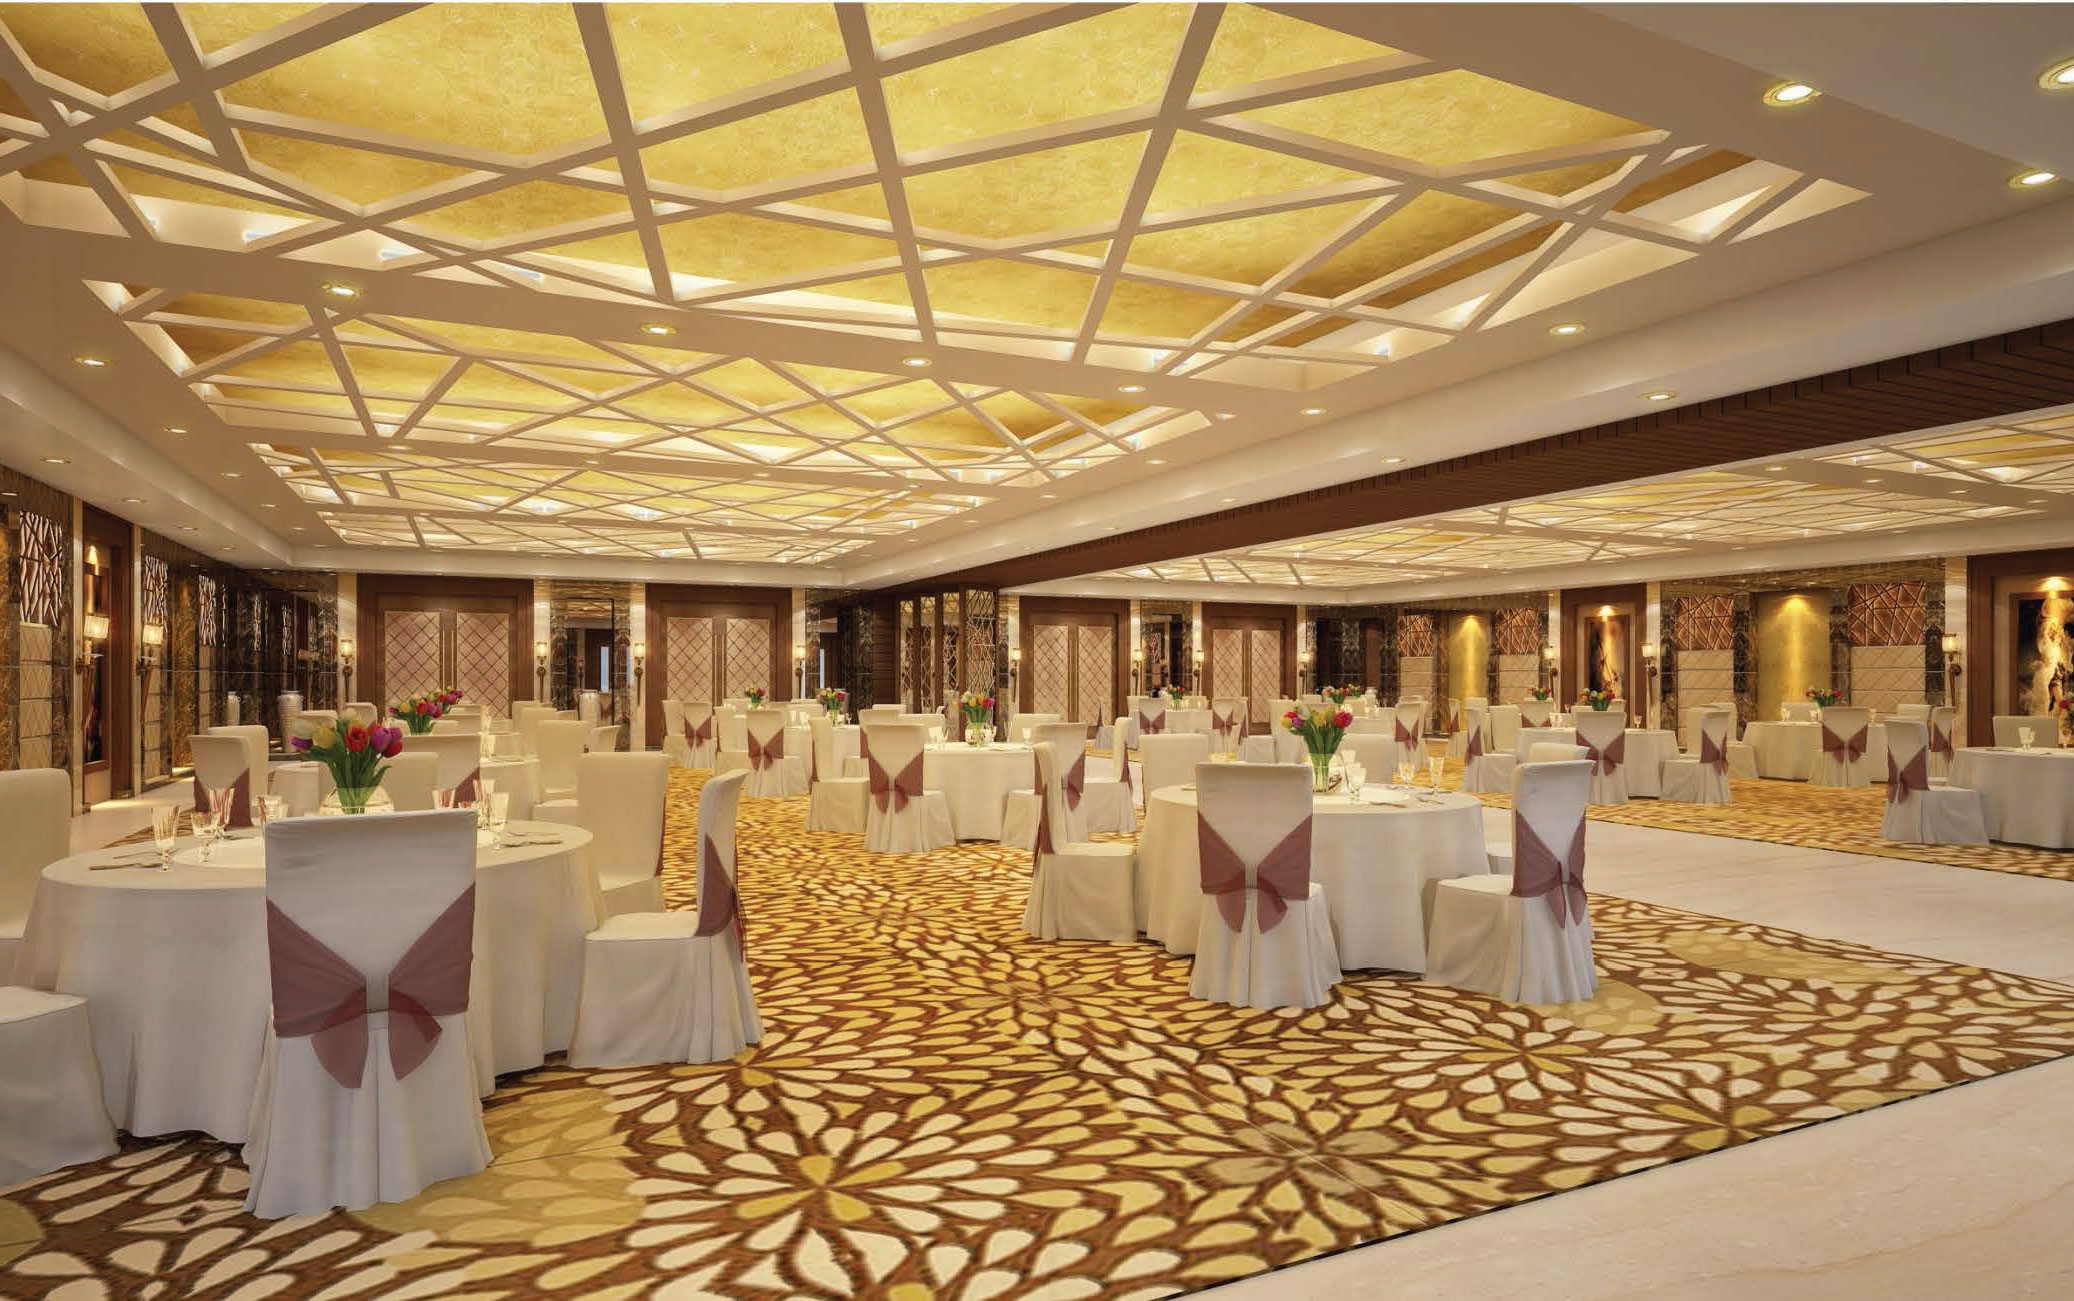 The proposed banquet hall - Candor TechSpace